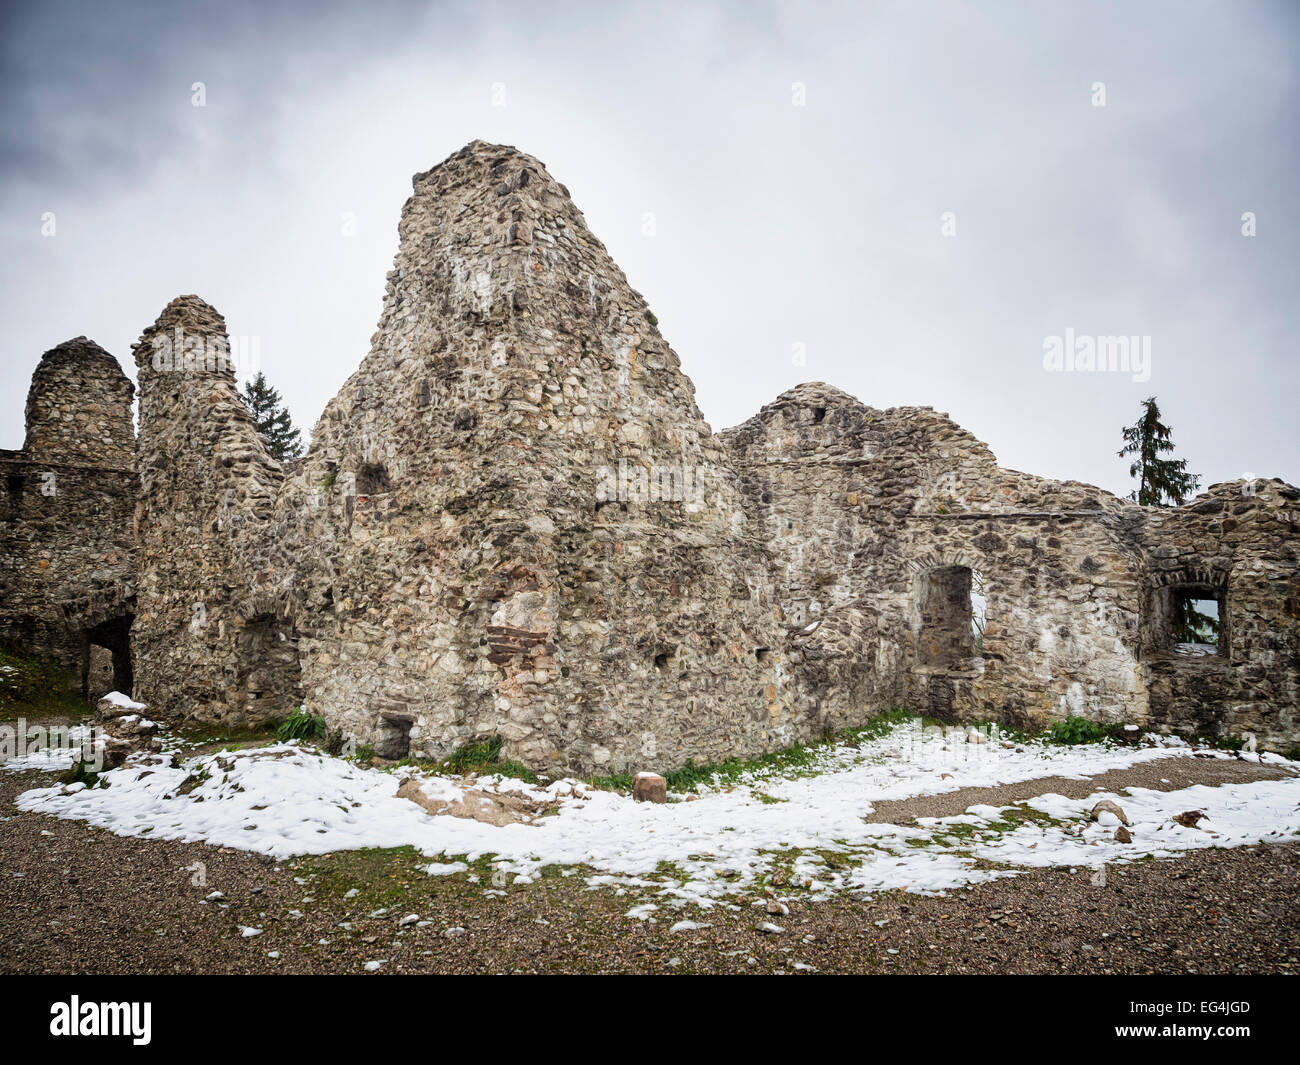 Image of ruin Hohenfreyberg on a winter day with mist and mystical mood - Stock Image